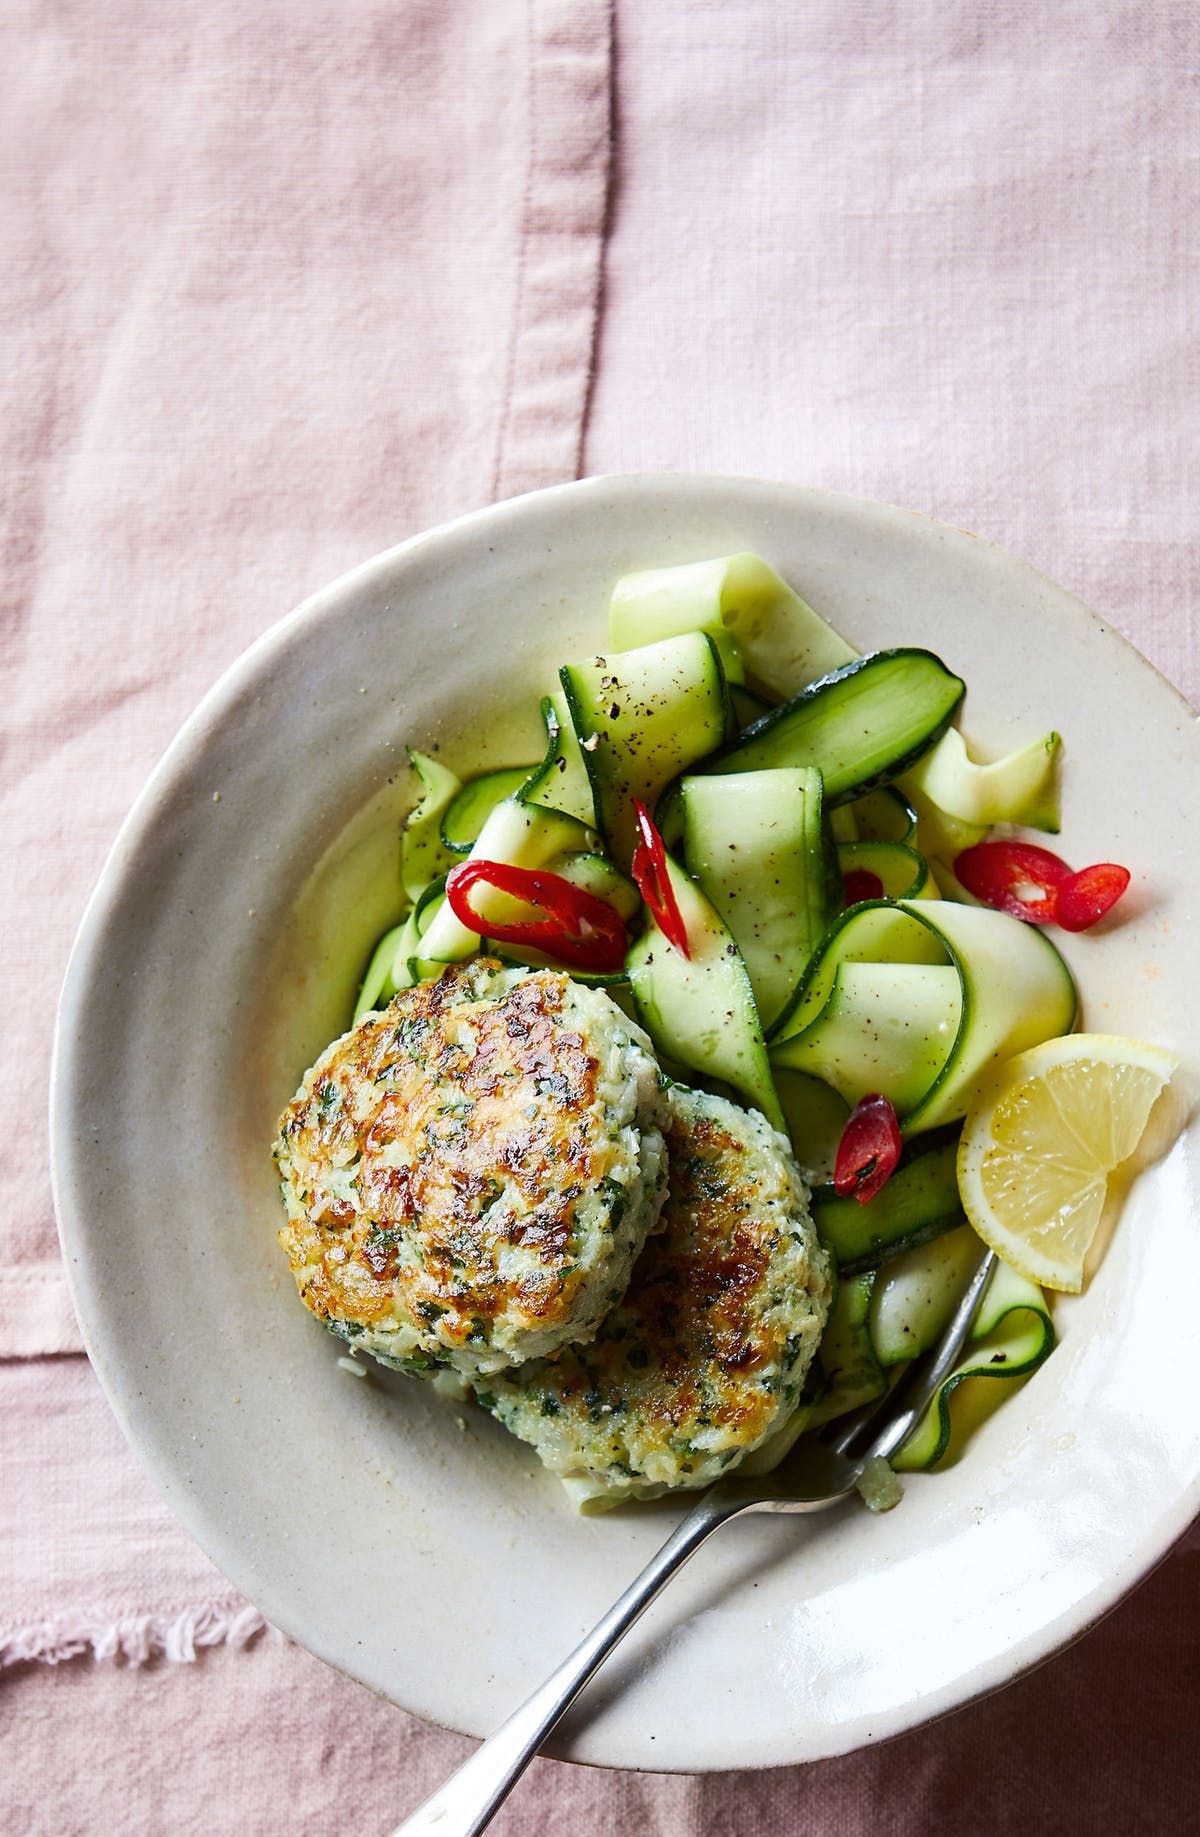 Herby fishcakes with zucchini salad